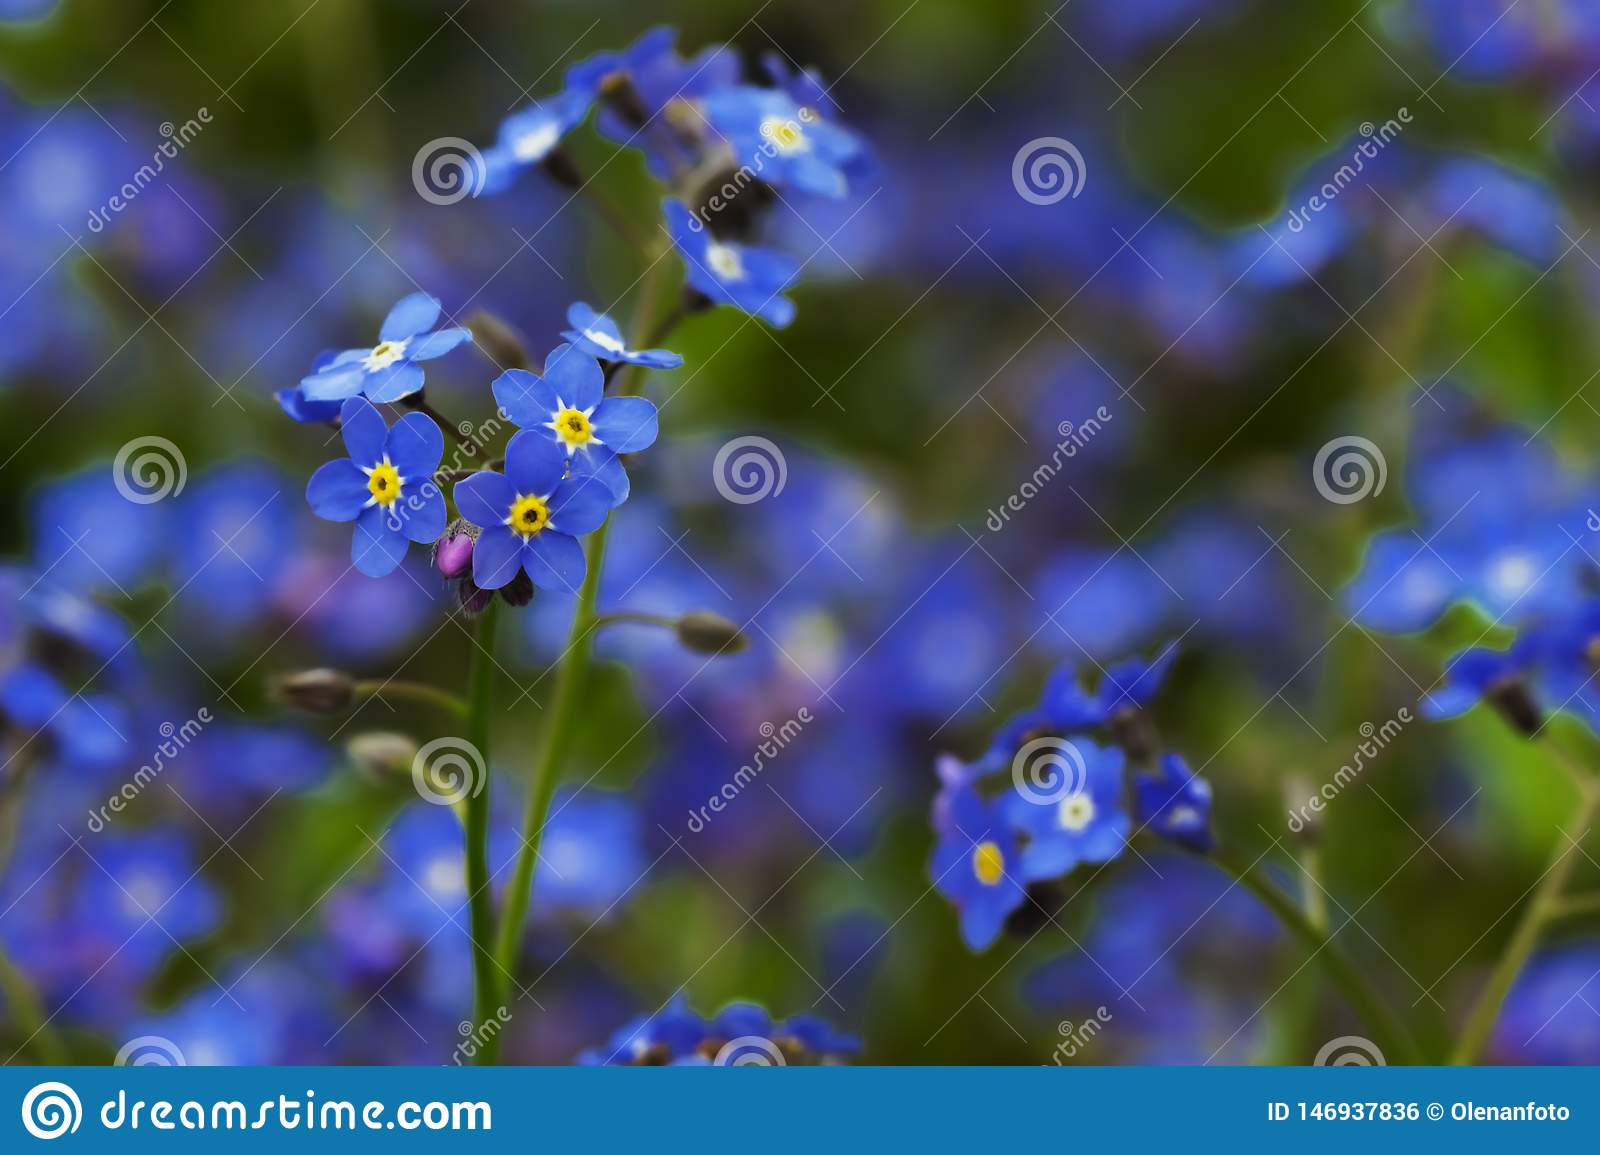 Blue charming small flowers